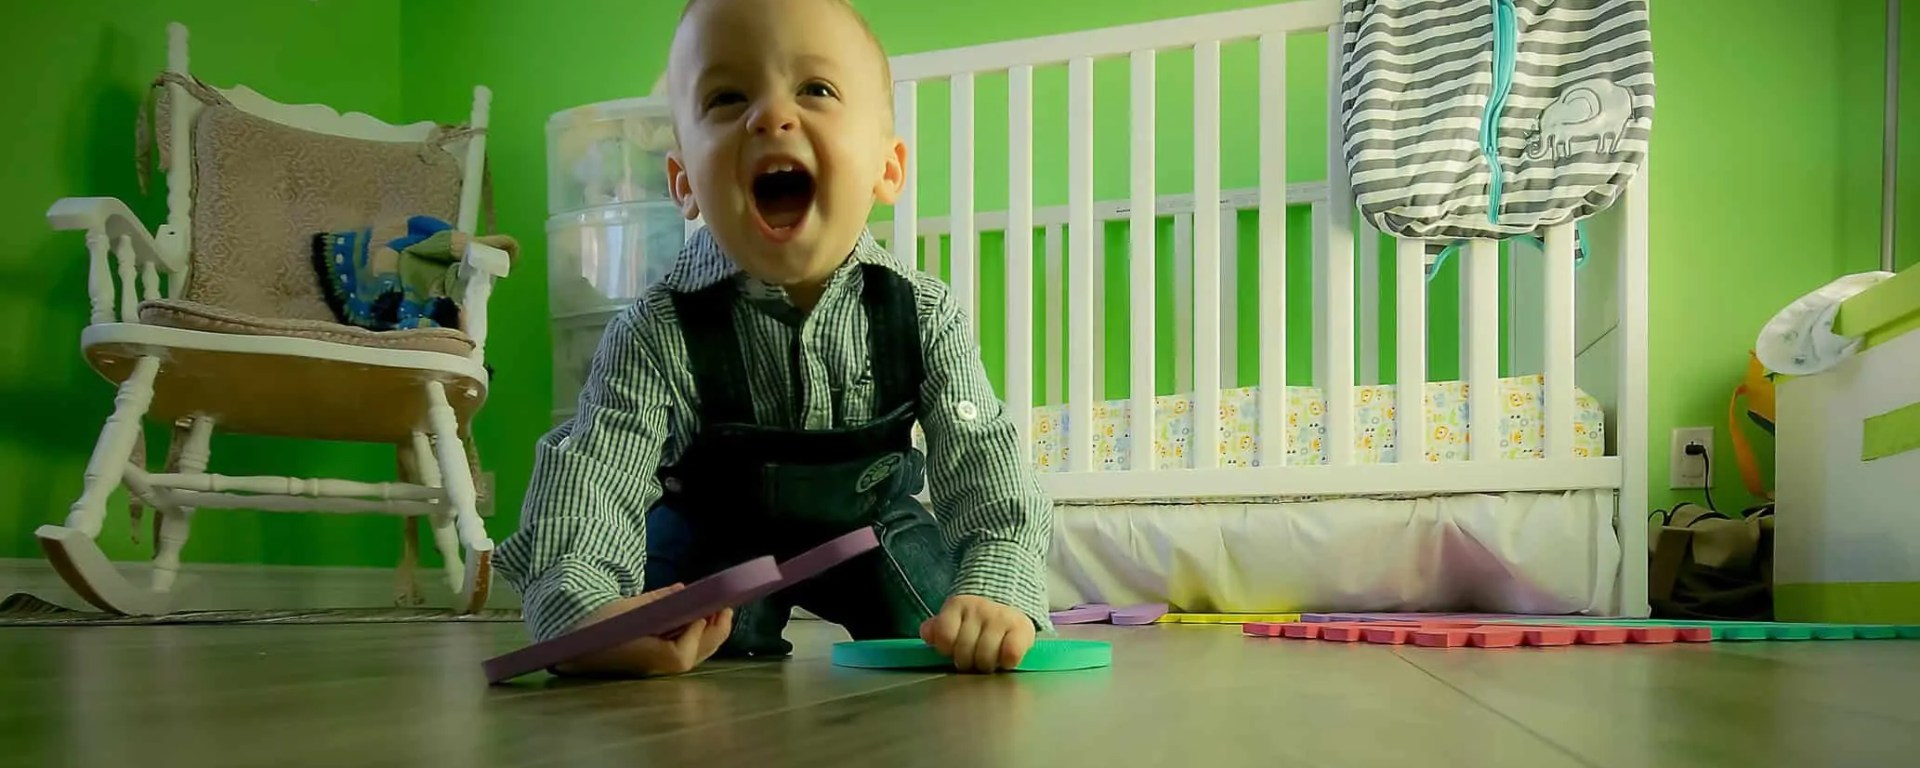 Baby crawling on floor yelling in front of crib